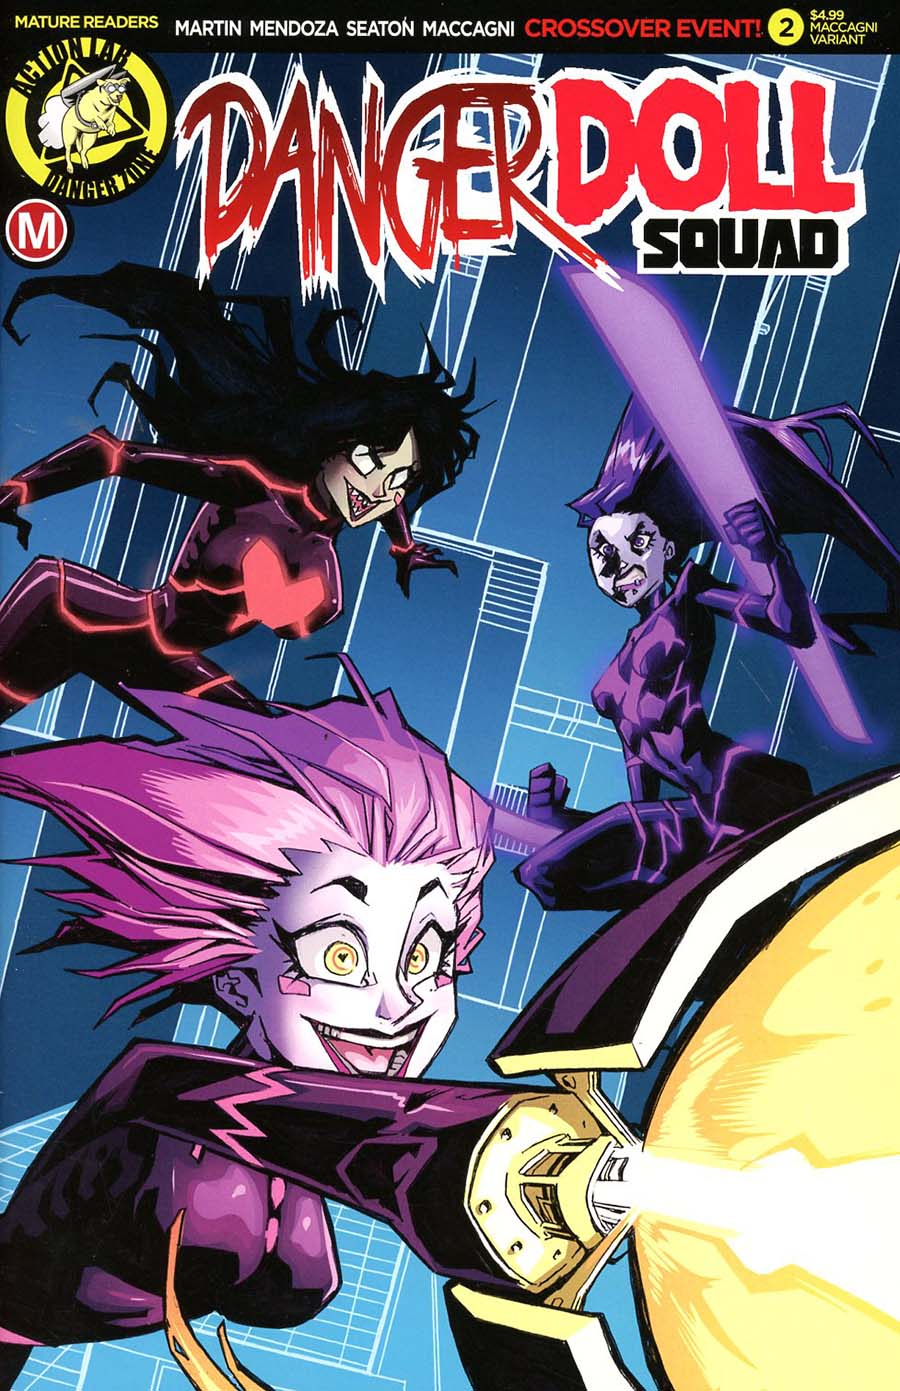 Danger Doll Squad #2 Cover E Variant Marco Maccagni Cover